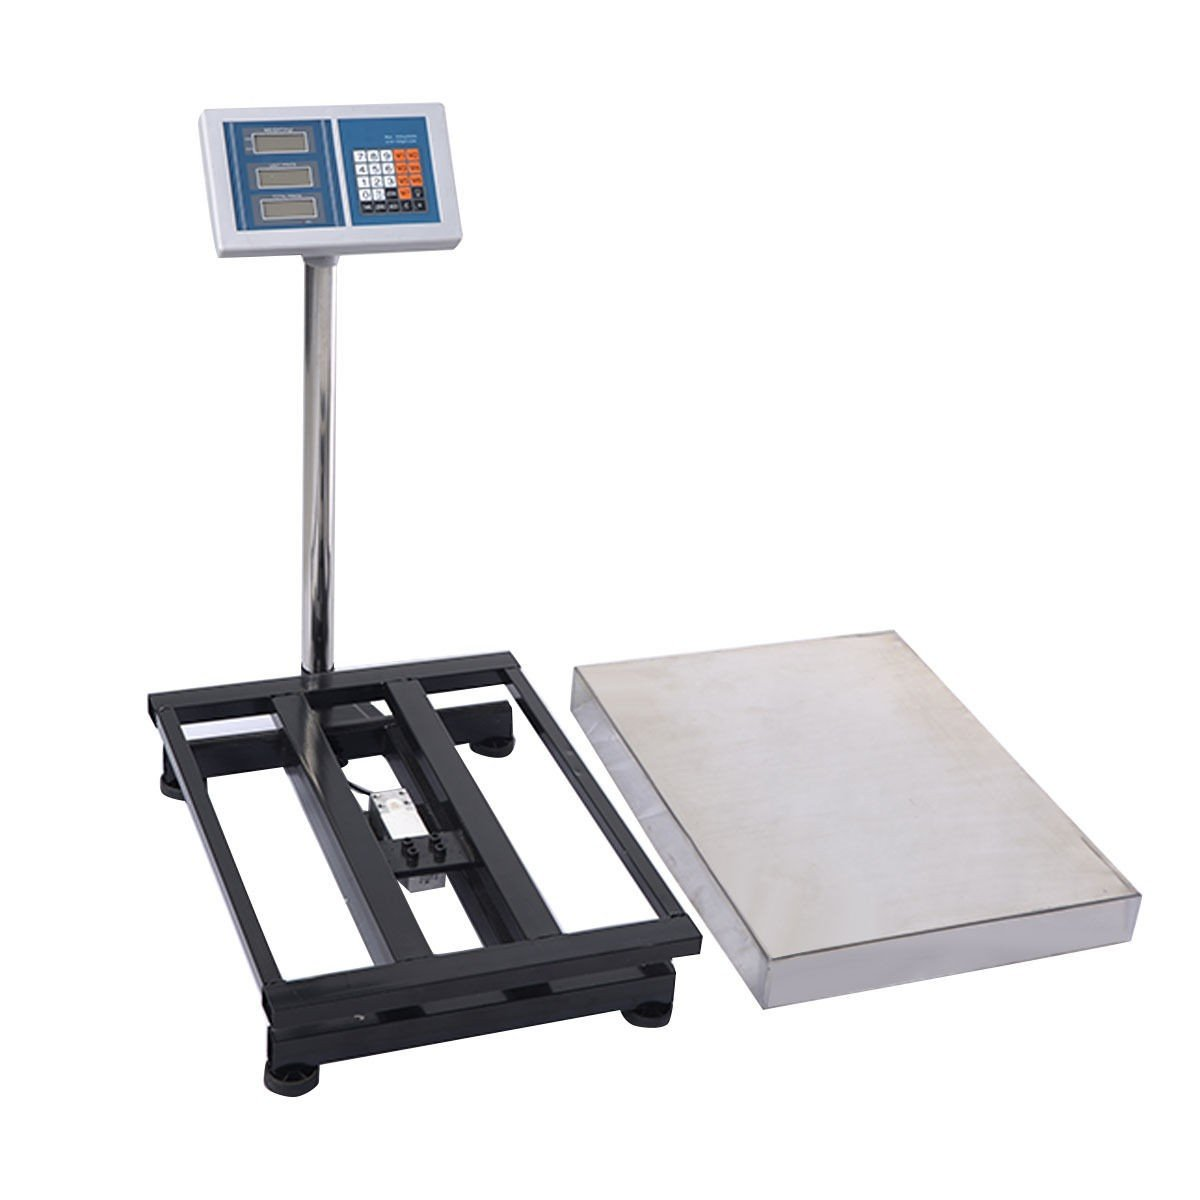 Digital Floor Platform Scale Weight Computing 660LBS Food Industry Shipping Postal Office Mailing Pet Weighing Indoor Outdoor Use Reinforced Stainless Steel by HomeProWholesale